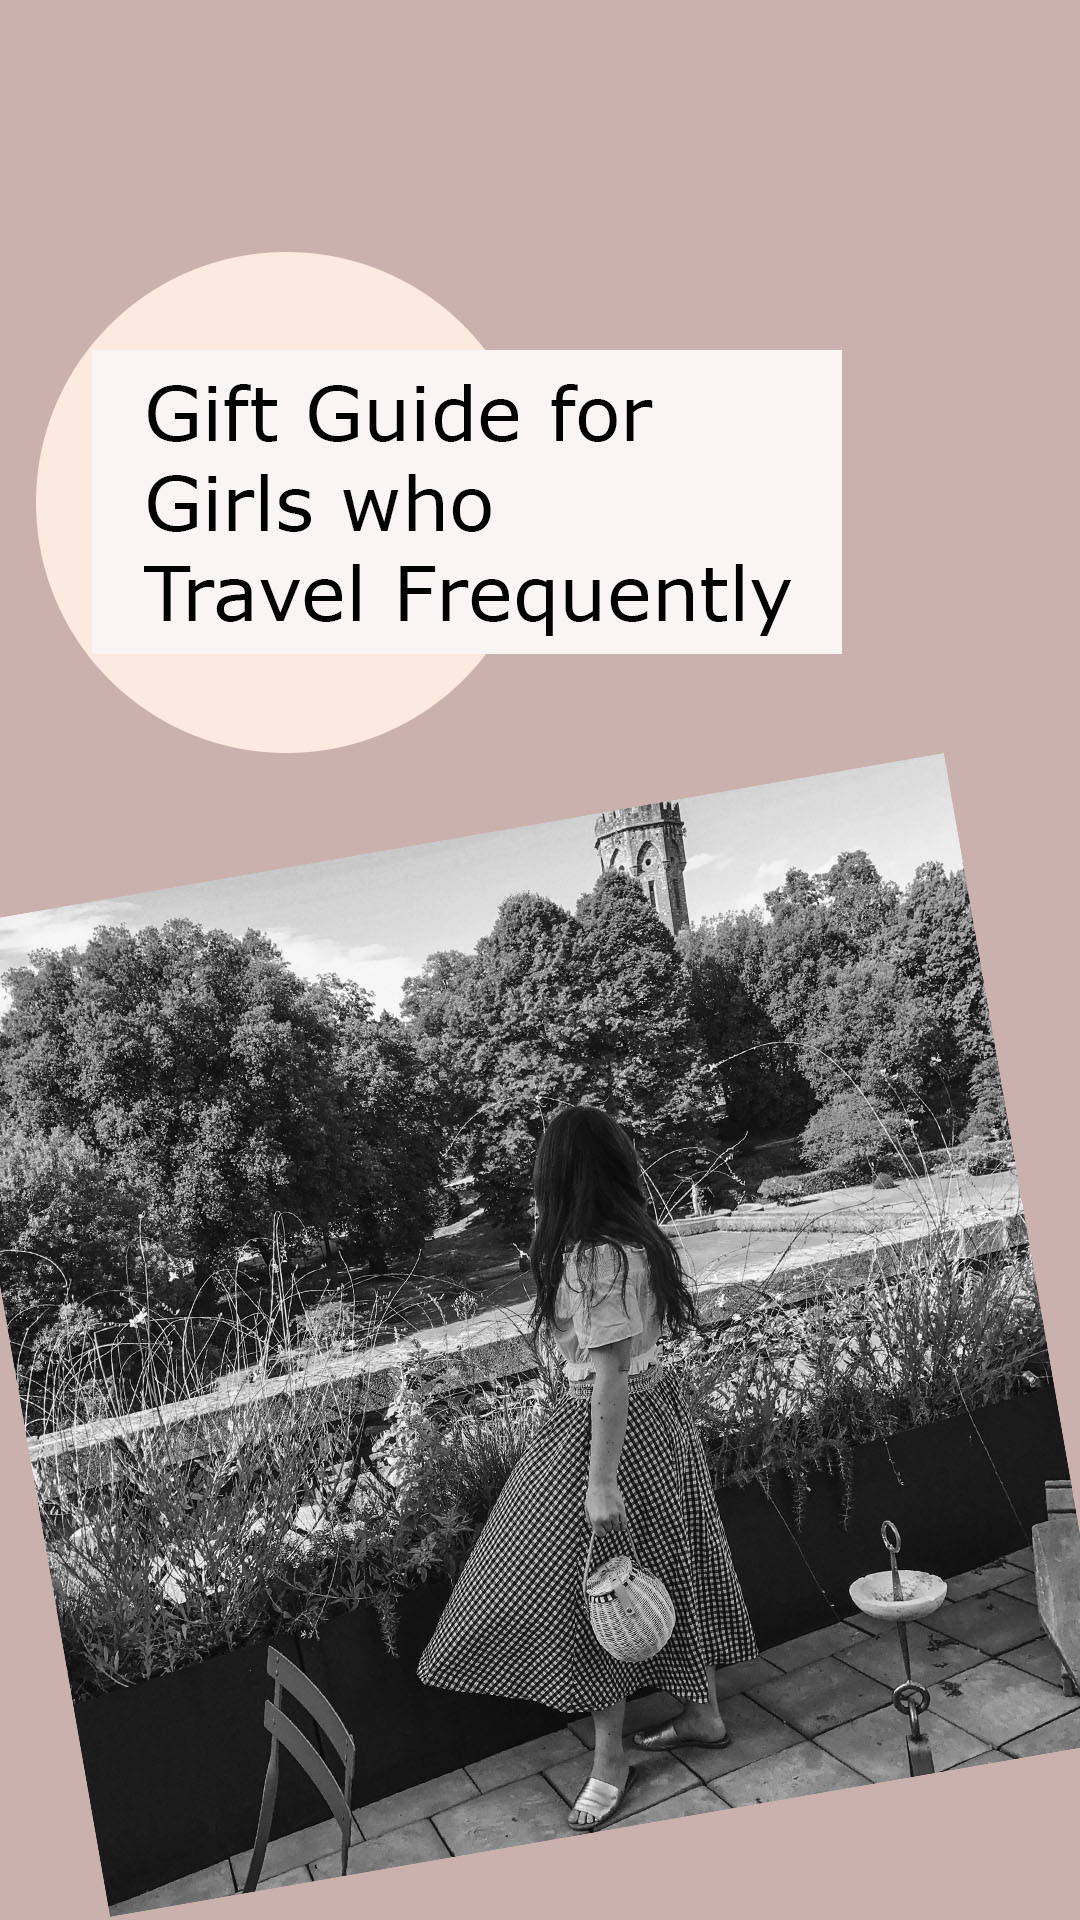 Gift Guide for Girls who Travel Frequently.jpg